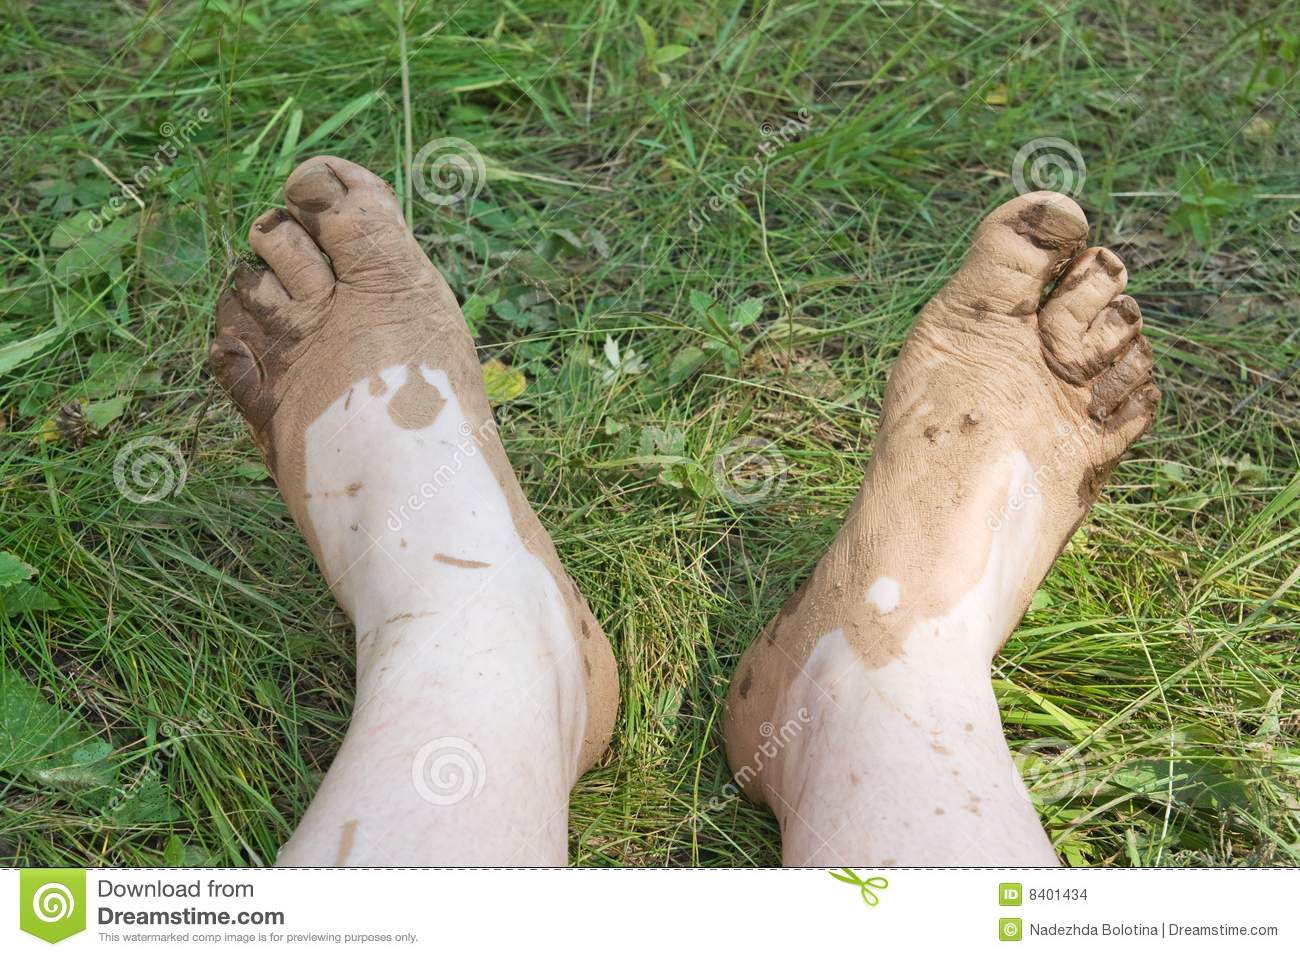 dirty-feet-8401434.jpg